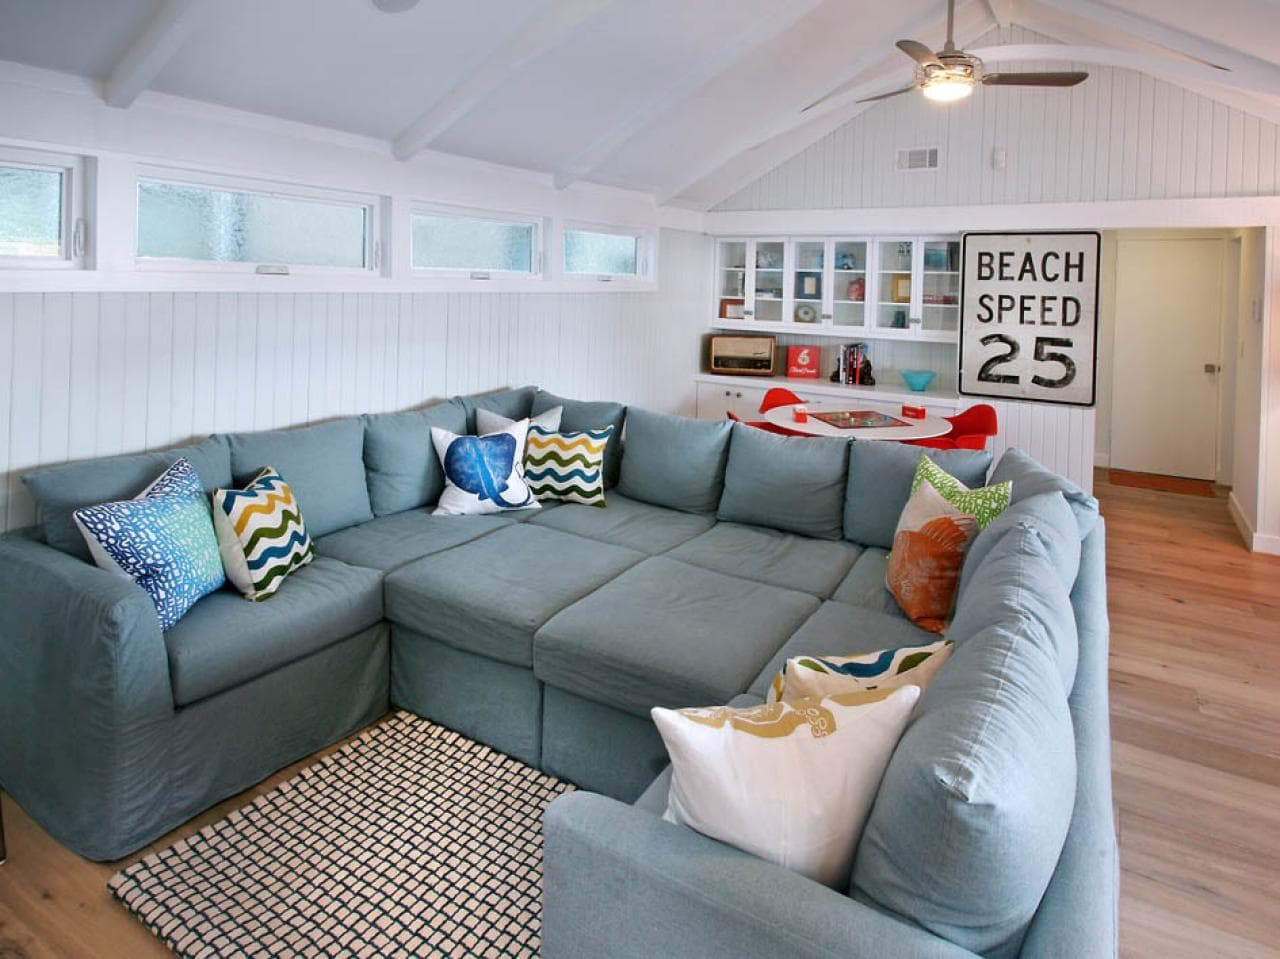 large sectional sofa in living room